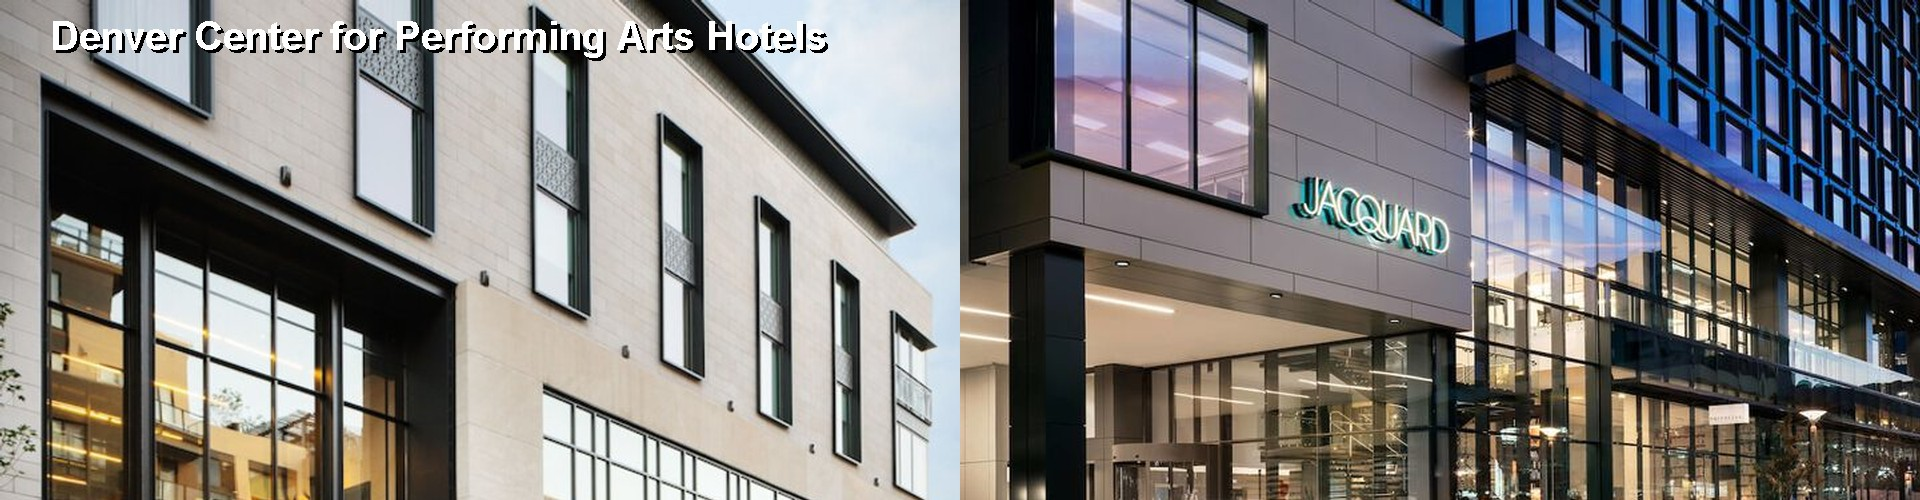 5 Best Hotels near Denver Center for Performing Arts